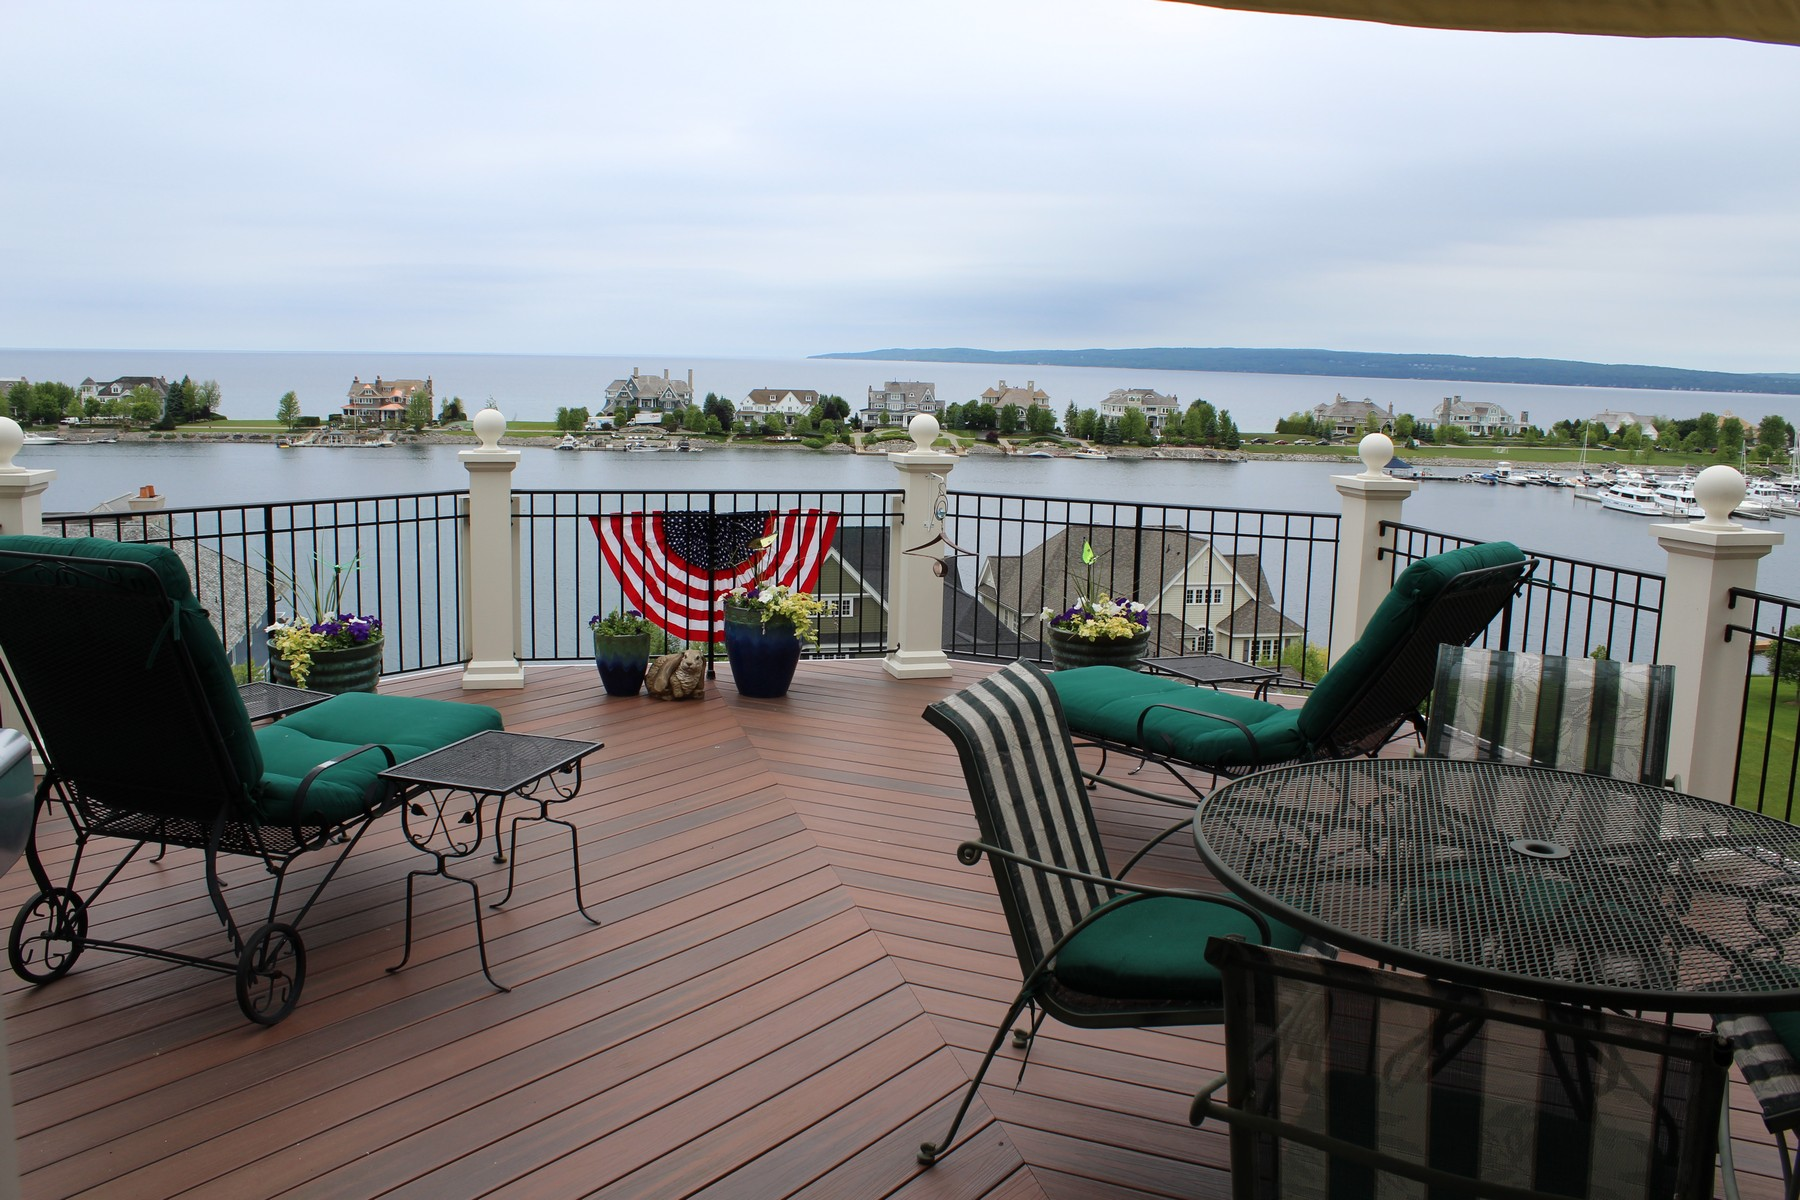 Single Family Home for Sale at Exclusive Water View Condo 4036 Harborview Ridge Unit #10 Bay Harbor, Michigan, 49770 United States